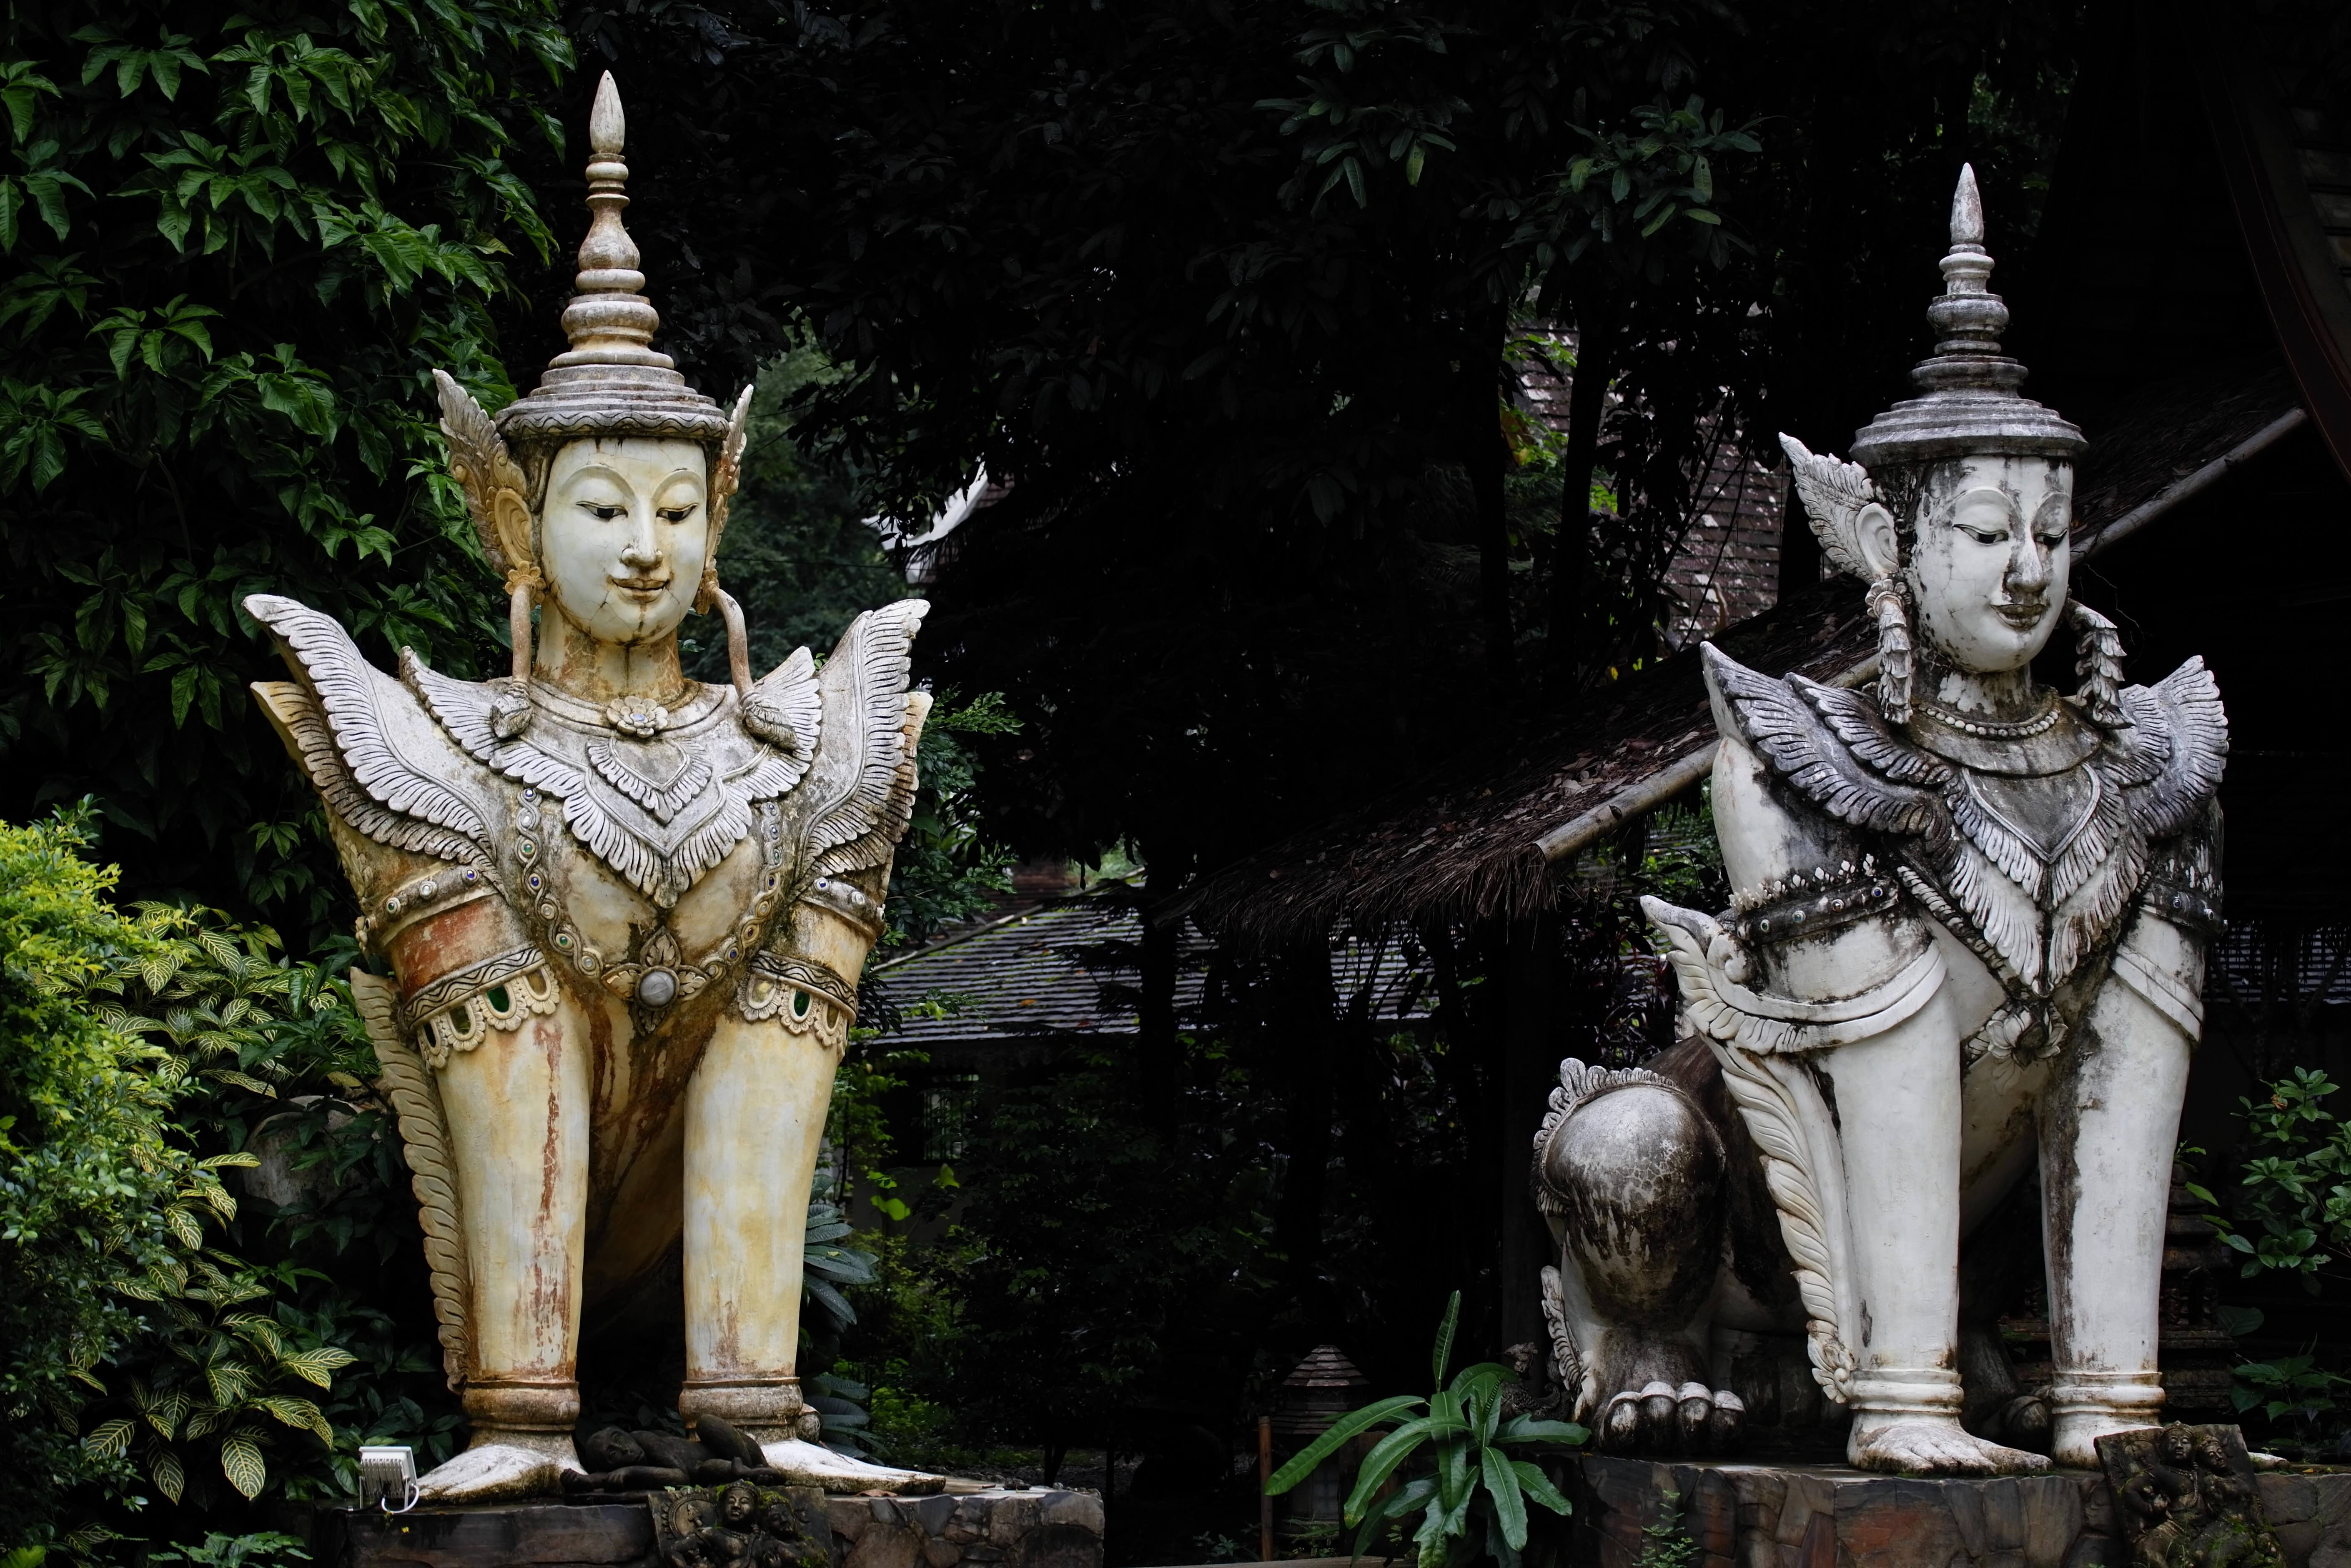 what to do in chiang mai, chiang mai thailand, chiang mai things to do, chiang mai attractions, things to do chiang mai, chiang mai city life, chiang mai temples